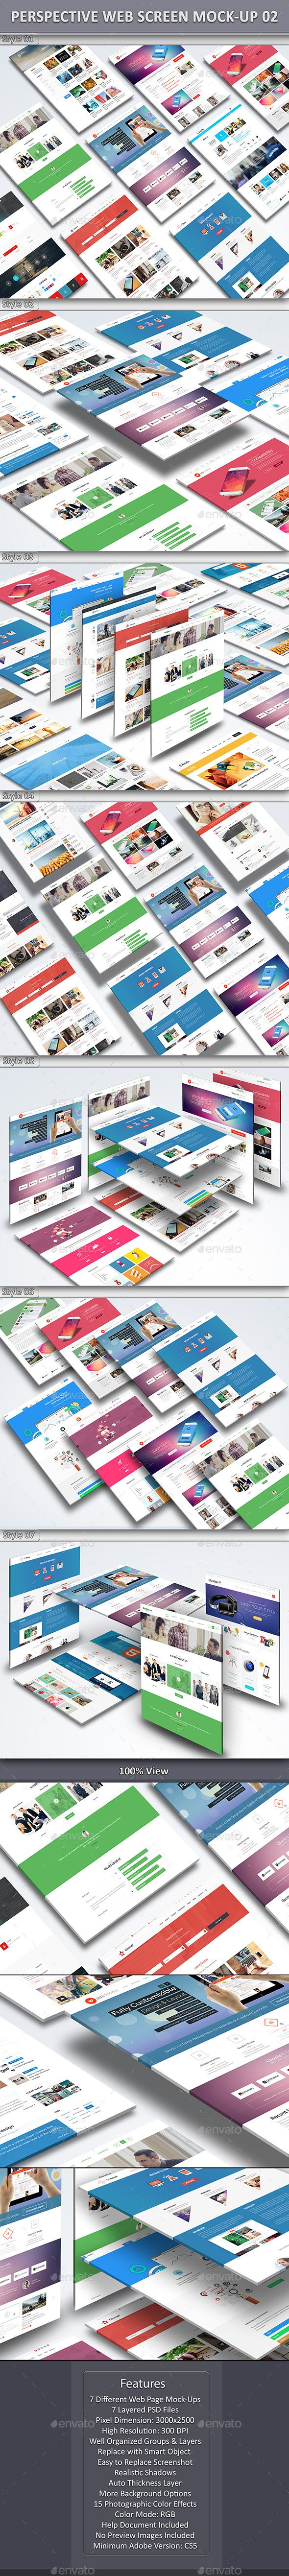 Perspective Web Screen Mock-Up 02 by towhid123griver Perspective Web Screen Mock-Up 02:The pack includes 07 perspective website mock-ups. 07 PSD files are included in the package. Ad